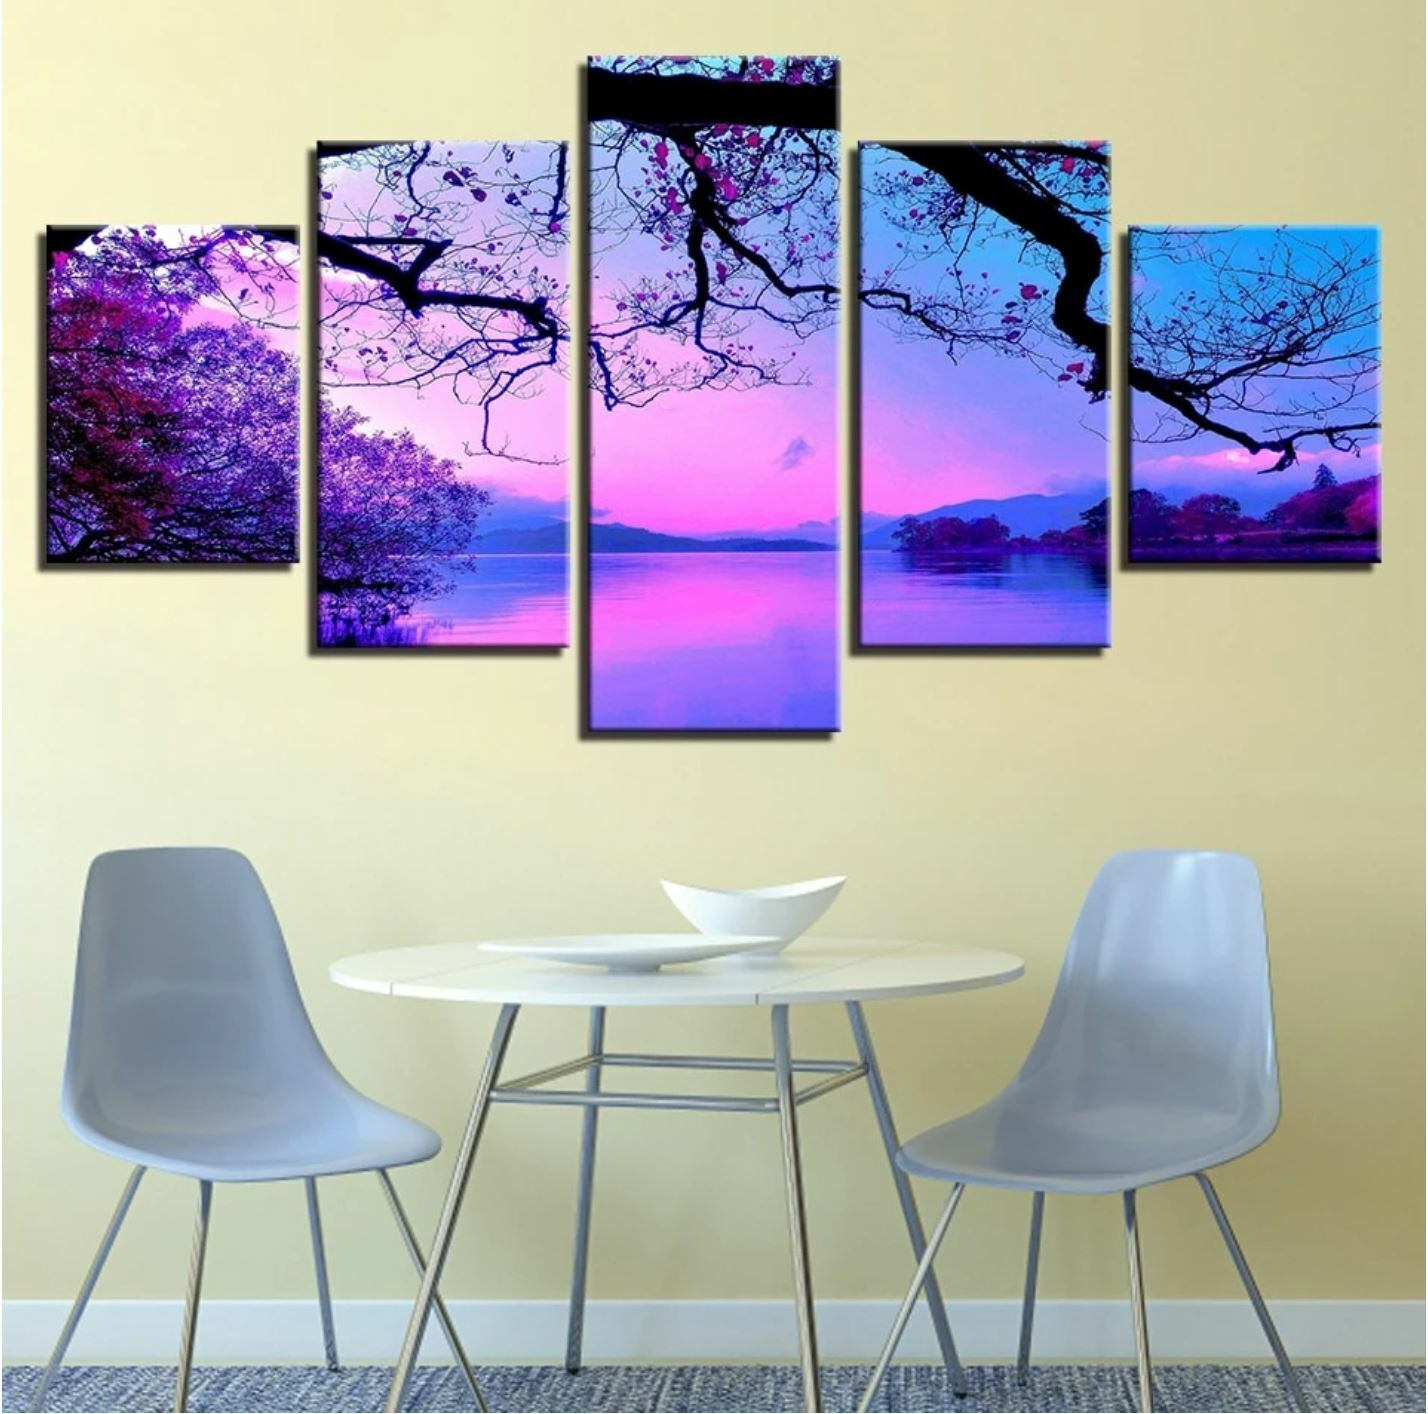 Sunset Lake In South Thailand 3 Piece Photographic Print On Wrapped Canvas Set For Sale Online Ebay